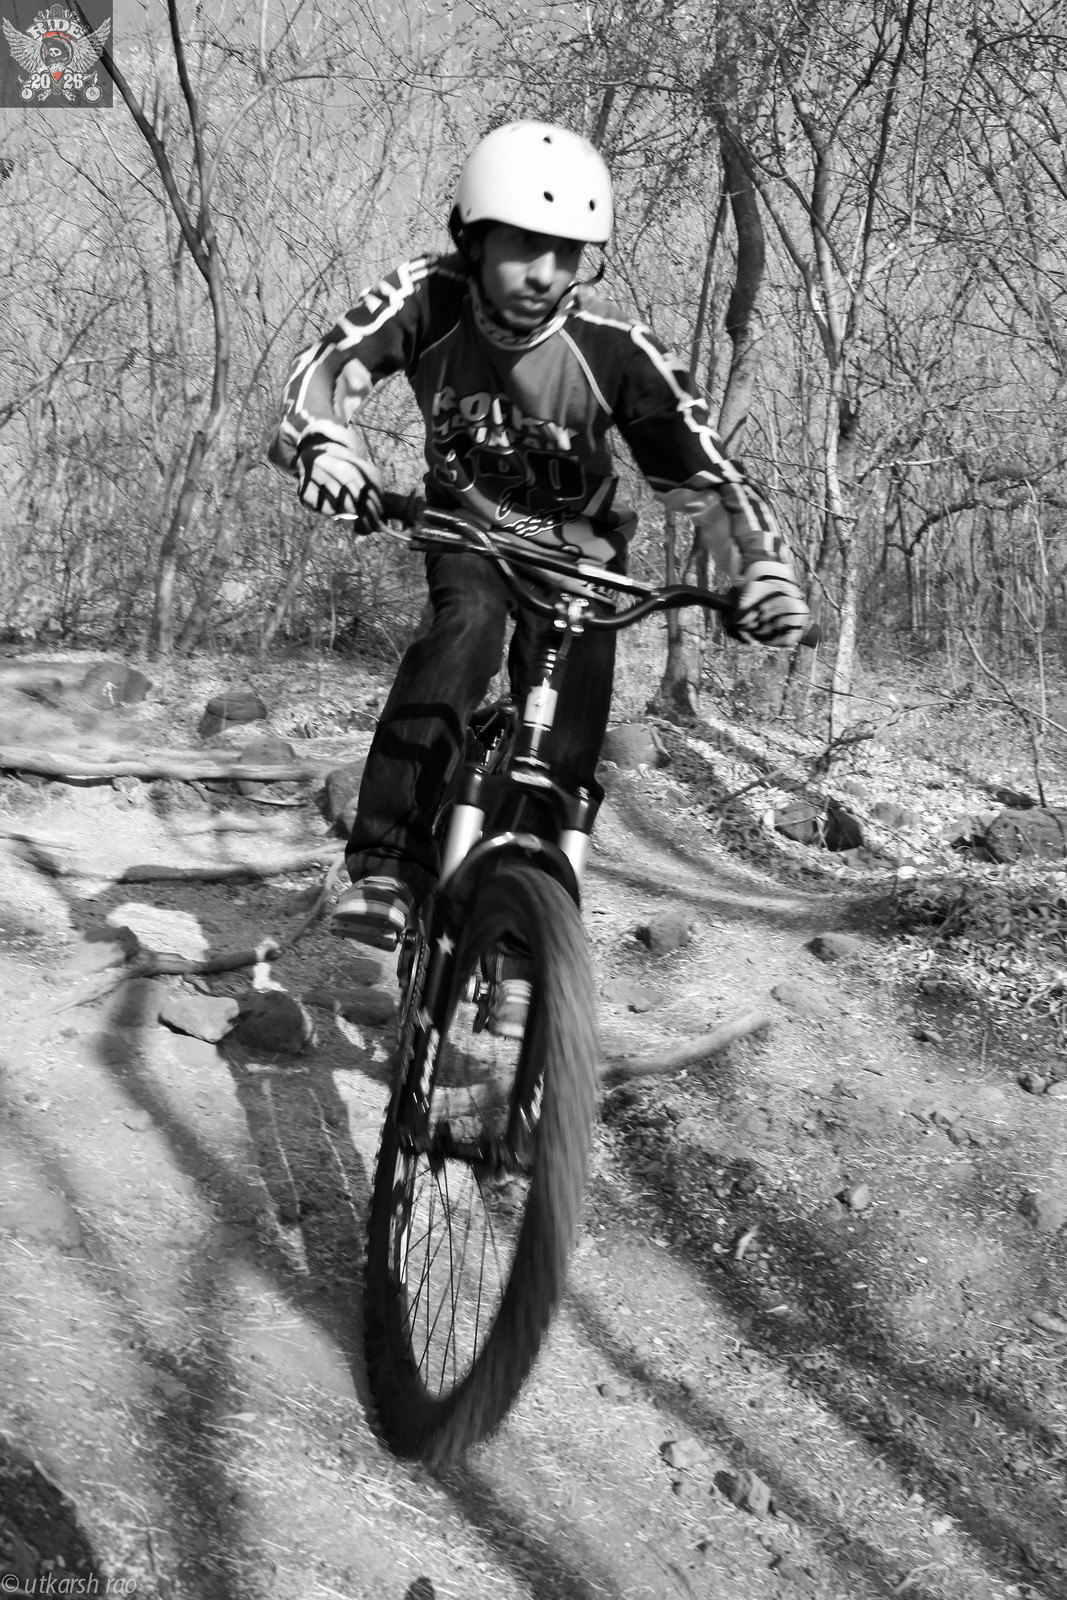 MG 4371 2 - utkarsh rao - Mountain Biking Pictures - Vital MTB